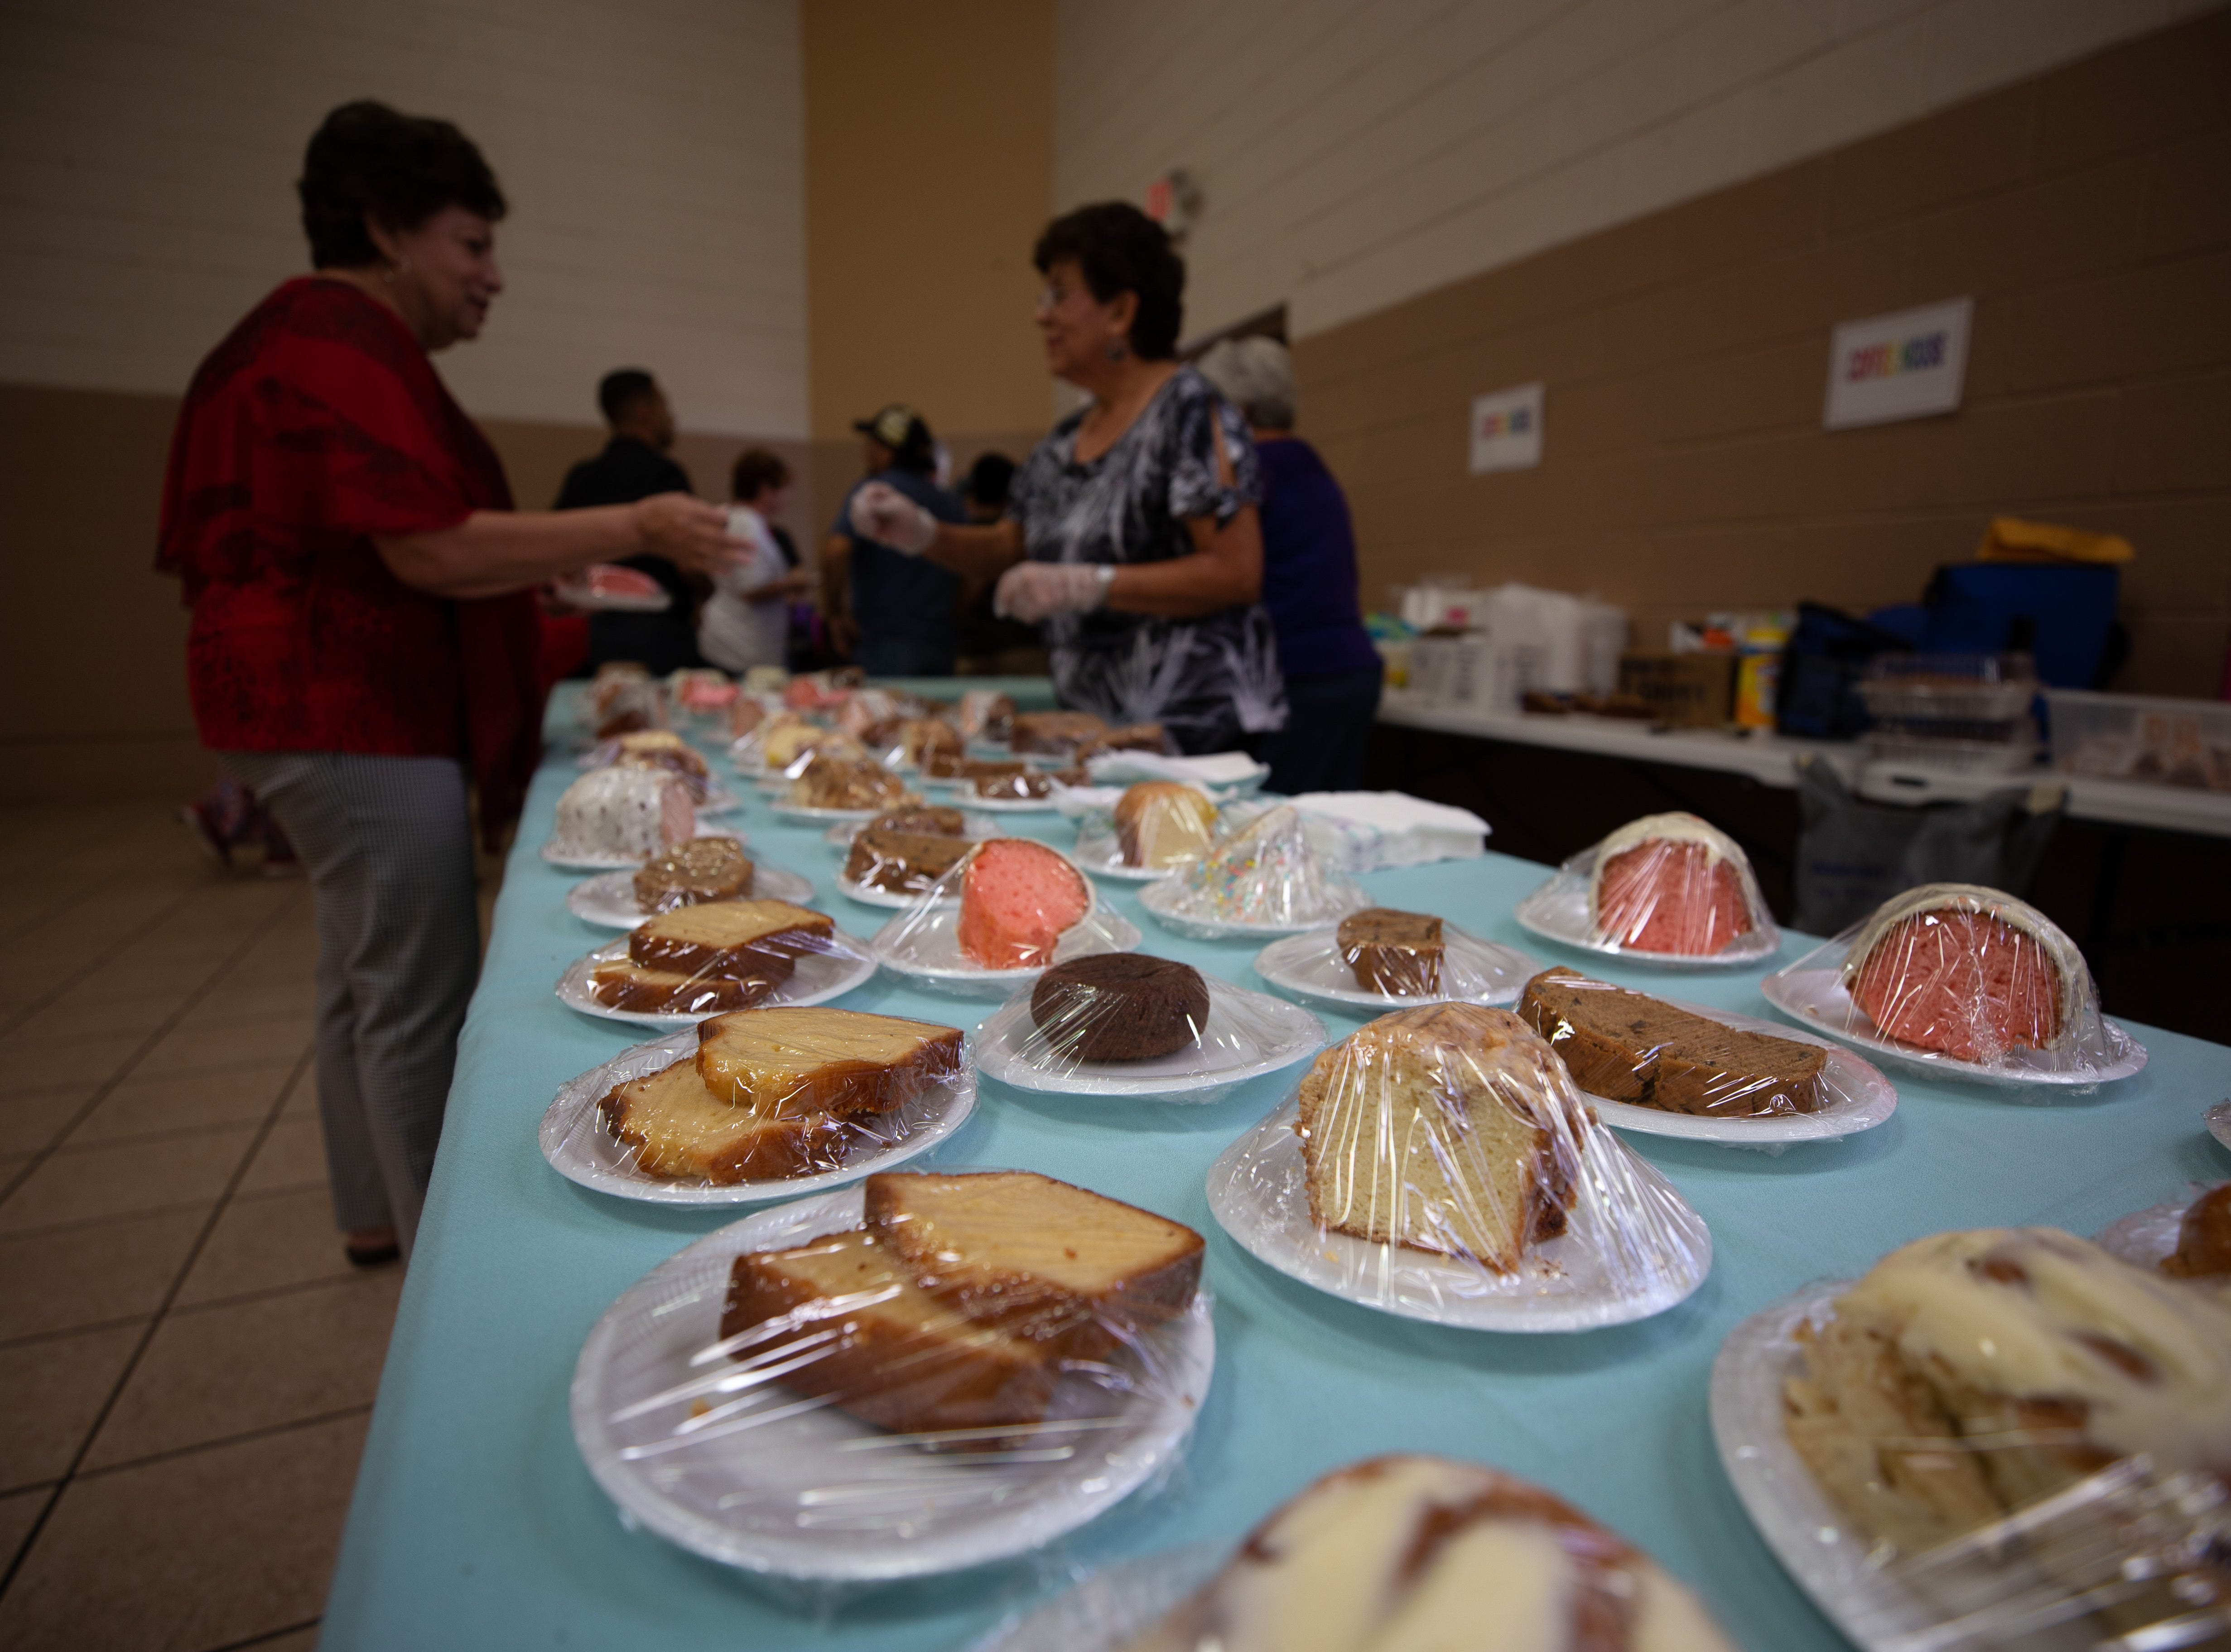 Baked goods line a table ready to be bought at the St. Genevieve Fiesta on Saturday, Sept. 8, 2018.